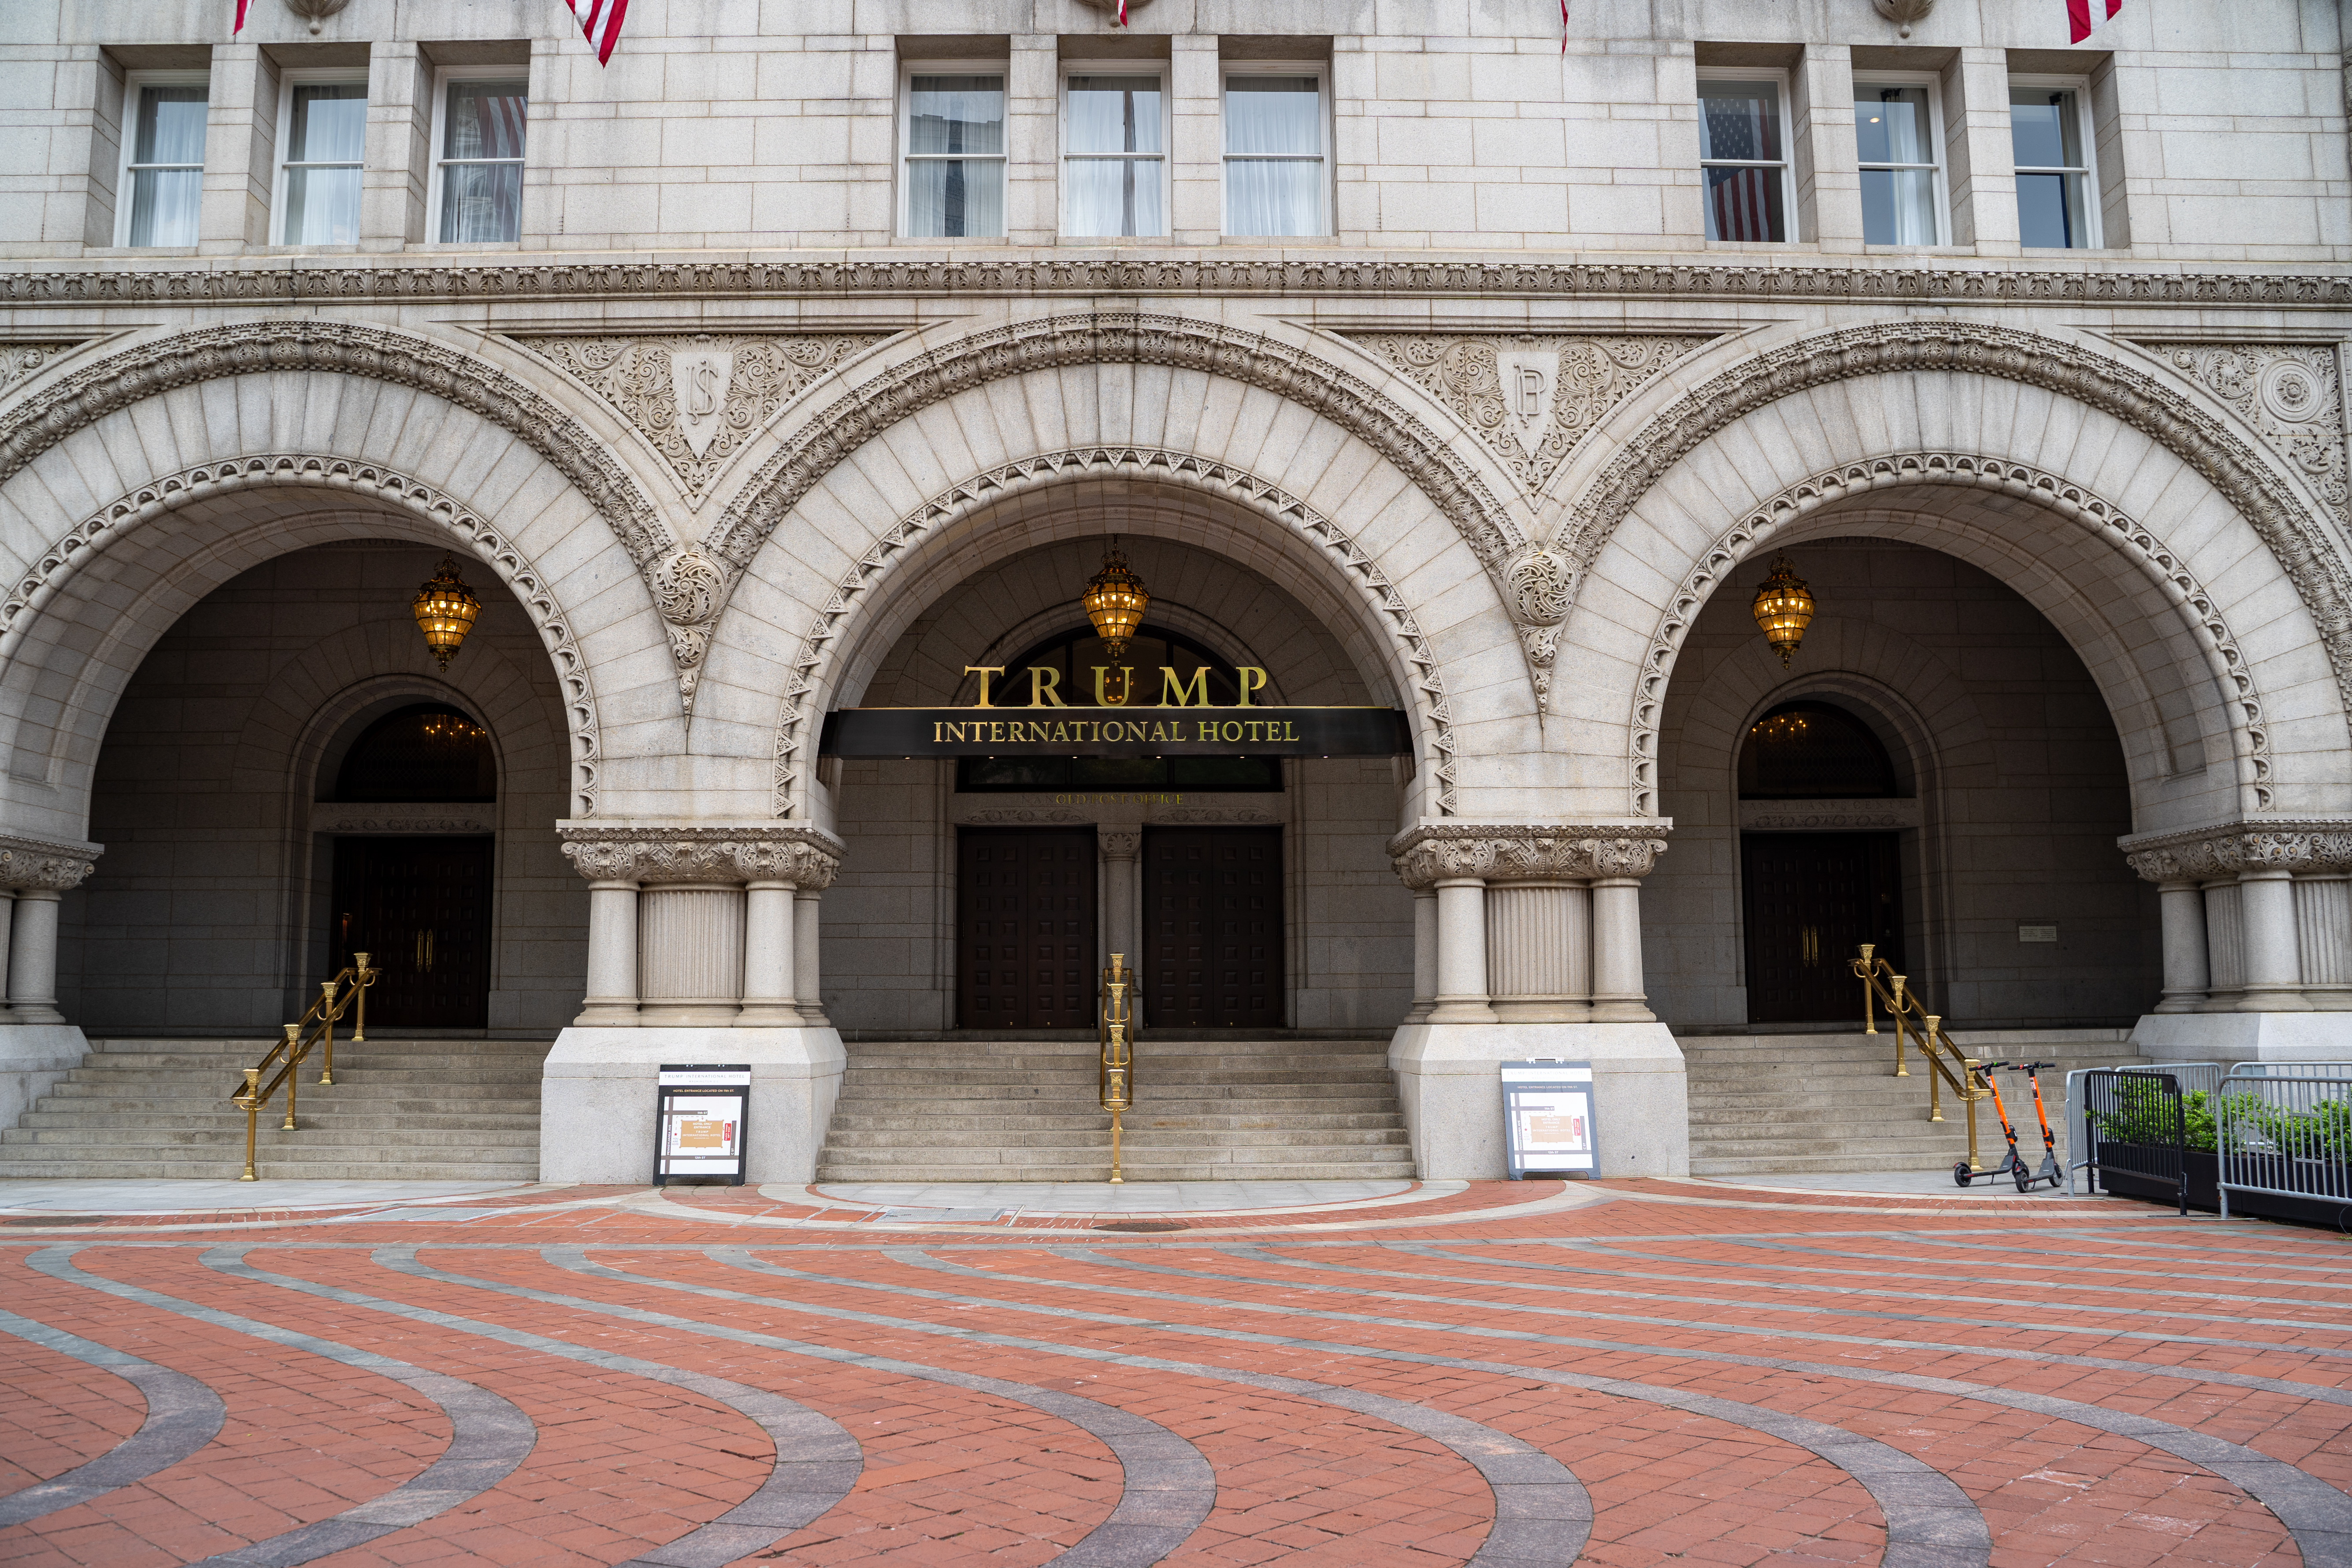 A brick driveway leading to the ornate entrance to a Washington, D.C. hotel